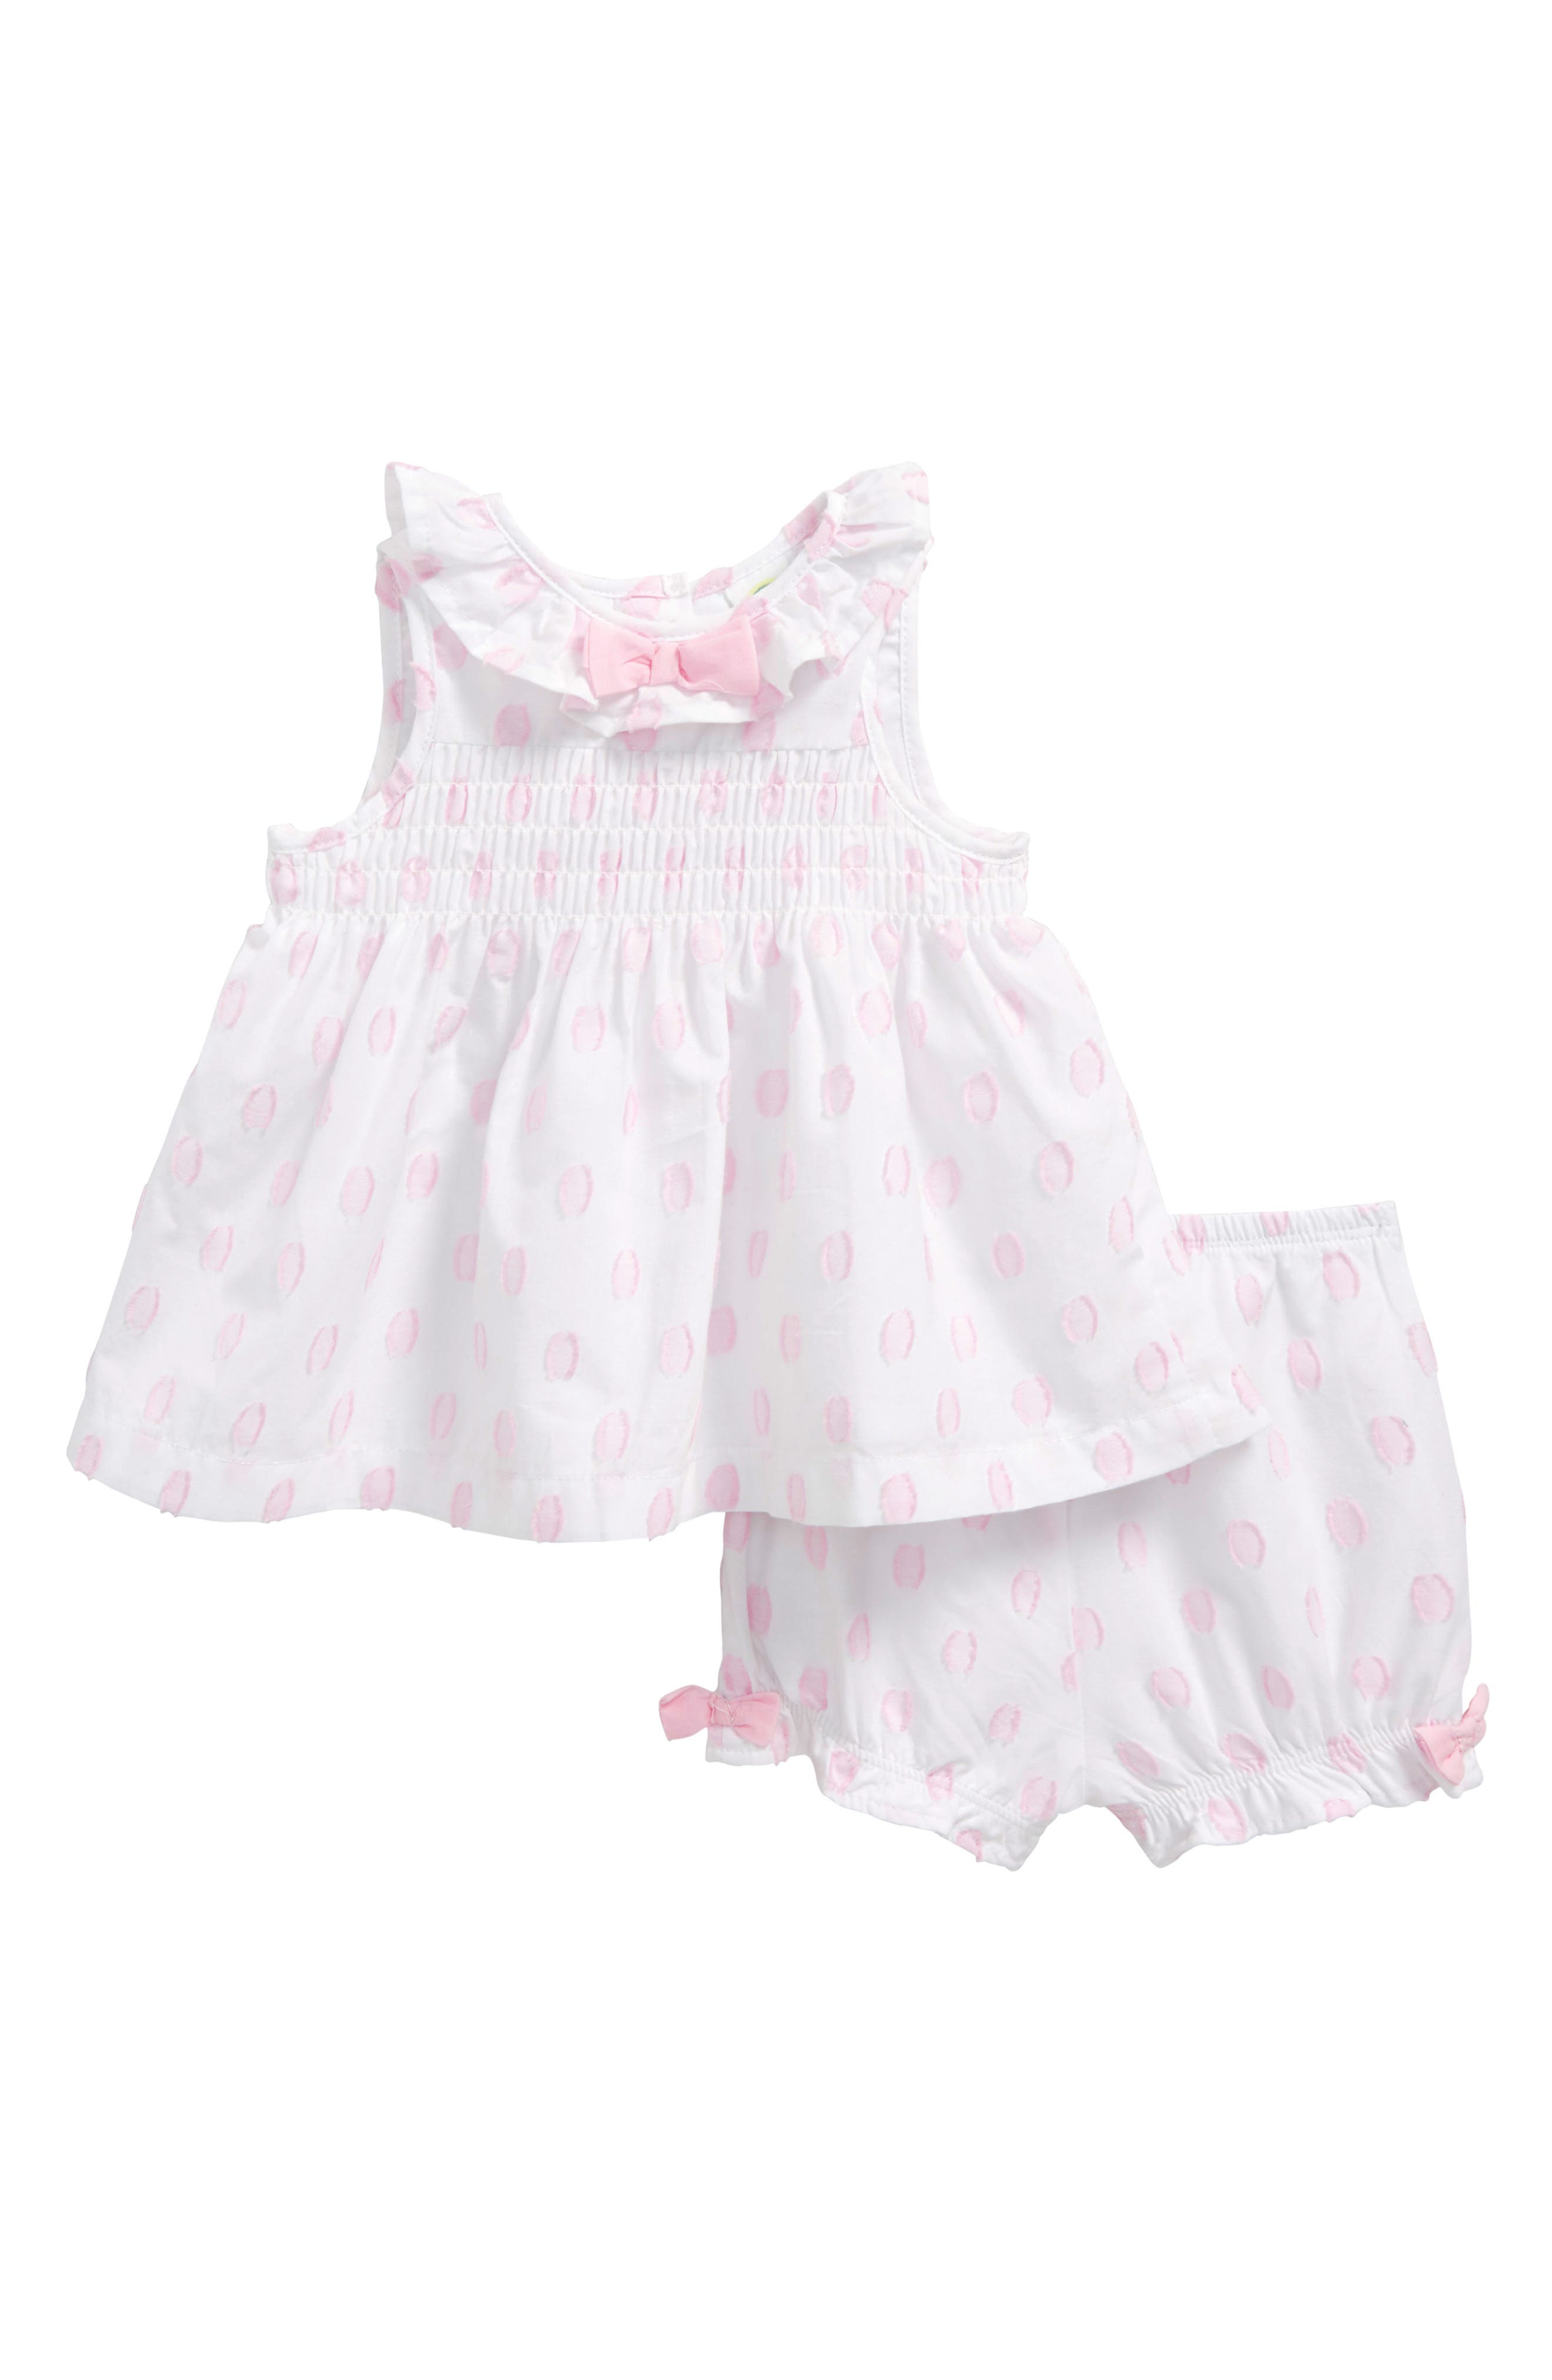 Tunic & Bloomers Set,                         Main,                         color, 112